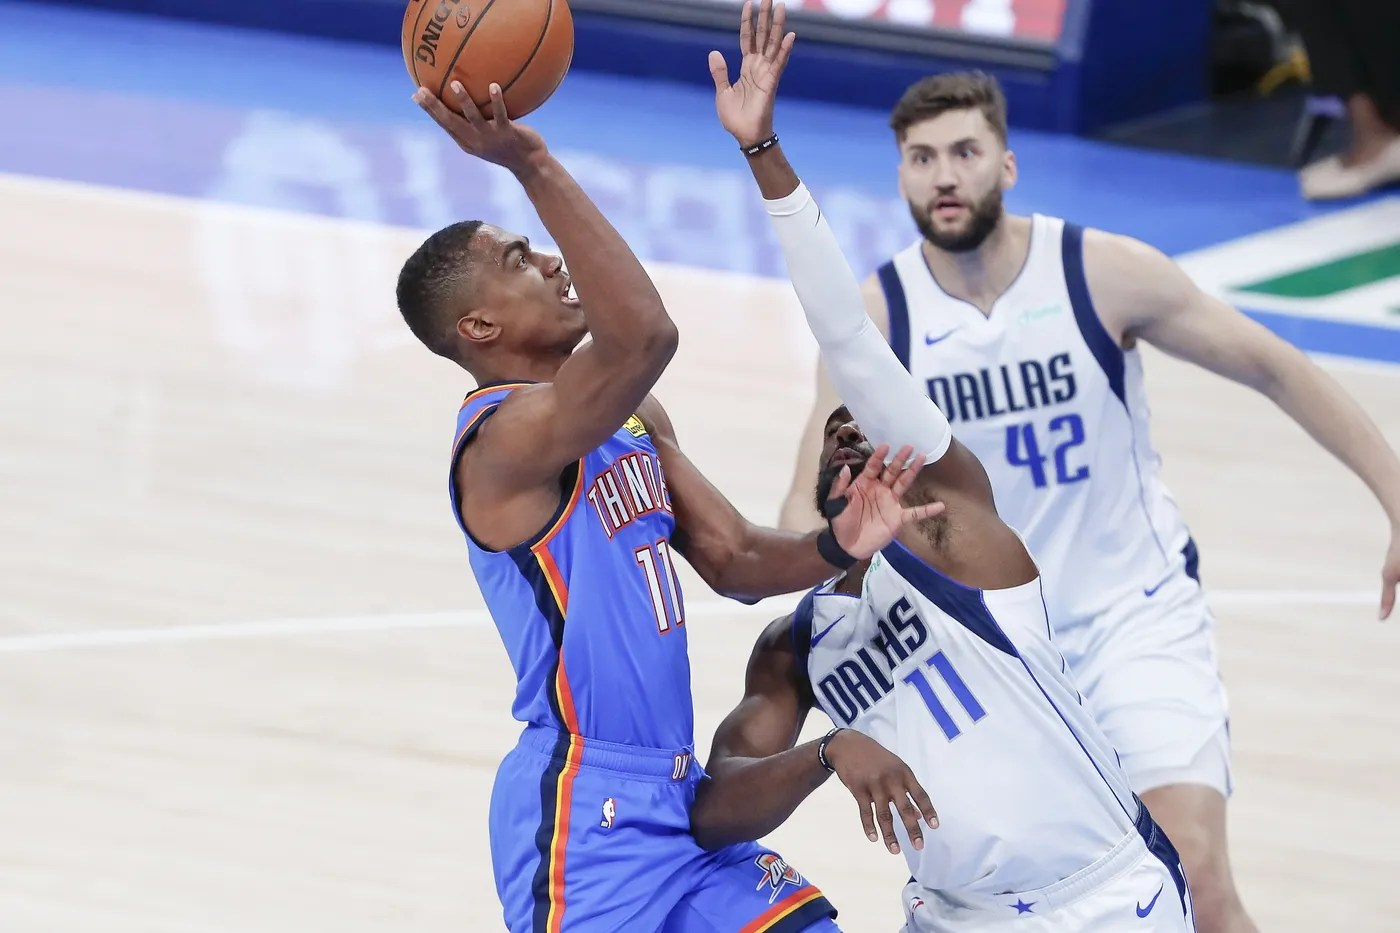 Mar 29, 2021; Oklahoma City, Oklahoma, USA; Oklahoma City Thunder guard Theo Maledon (11) goes up for a shot as Dallas Mavericks forward Tim Hardaway Jr. (11) defends him during the second quarter at Chesapeake Energy Arena. Mandatory Credit: Alonzo Adams-USA TODAY Sports